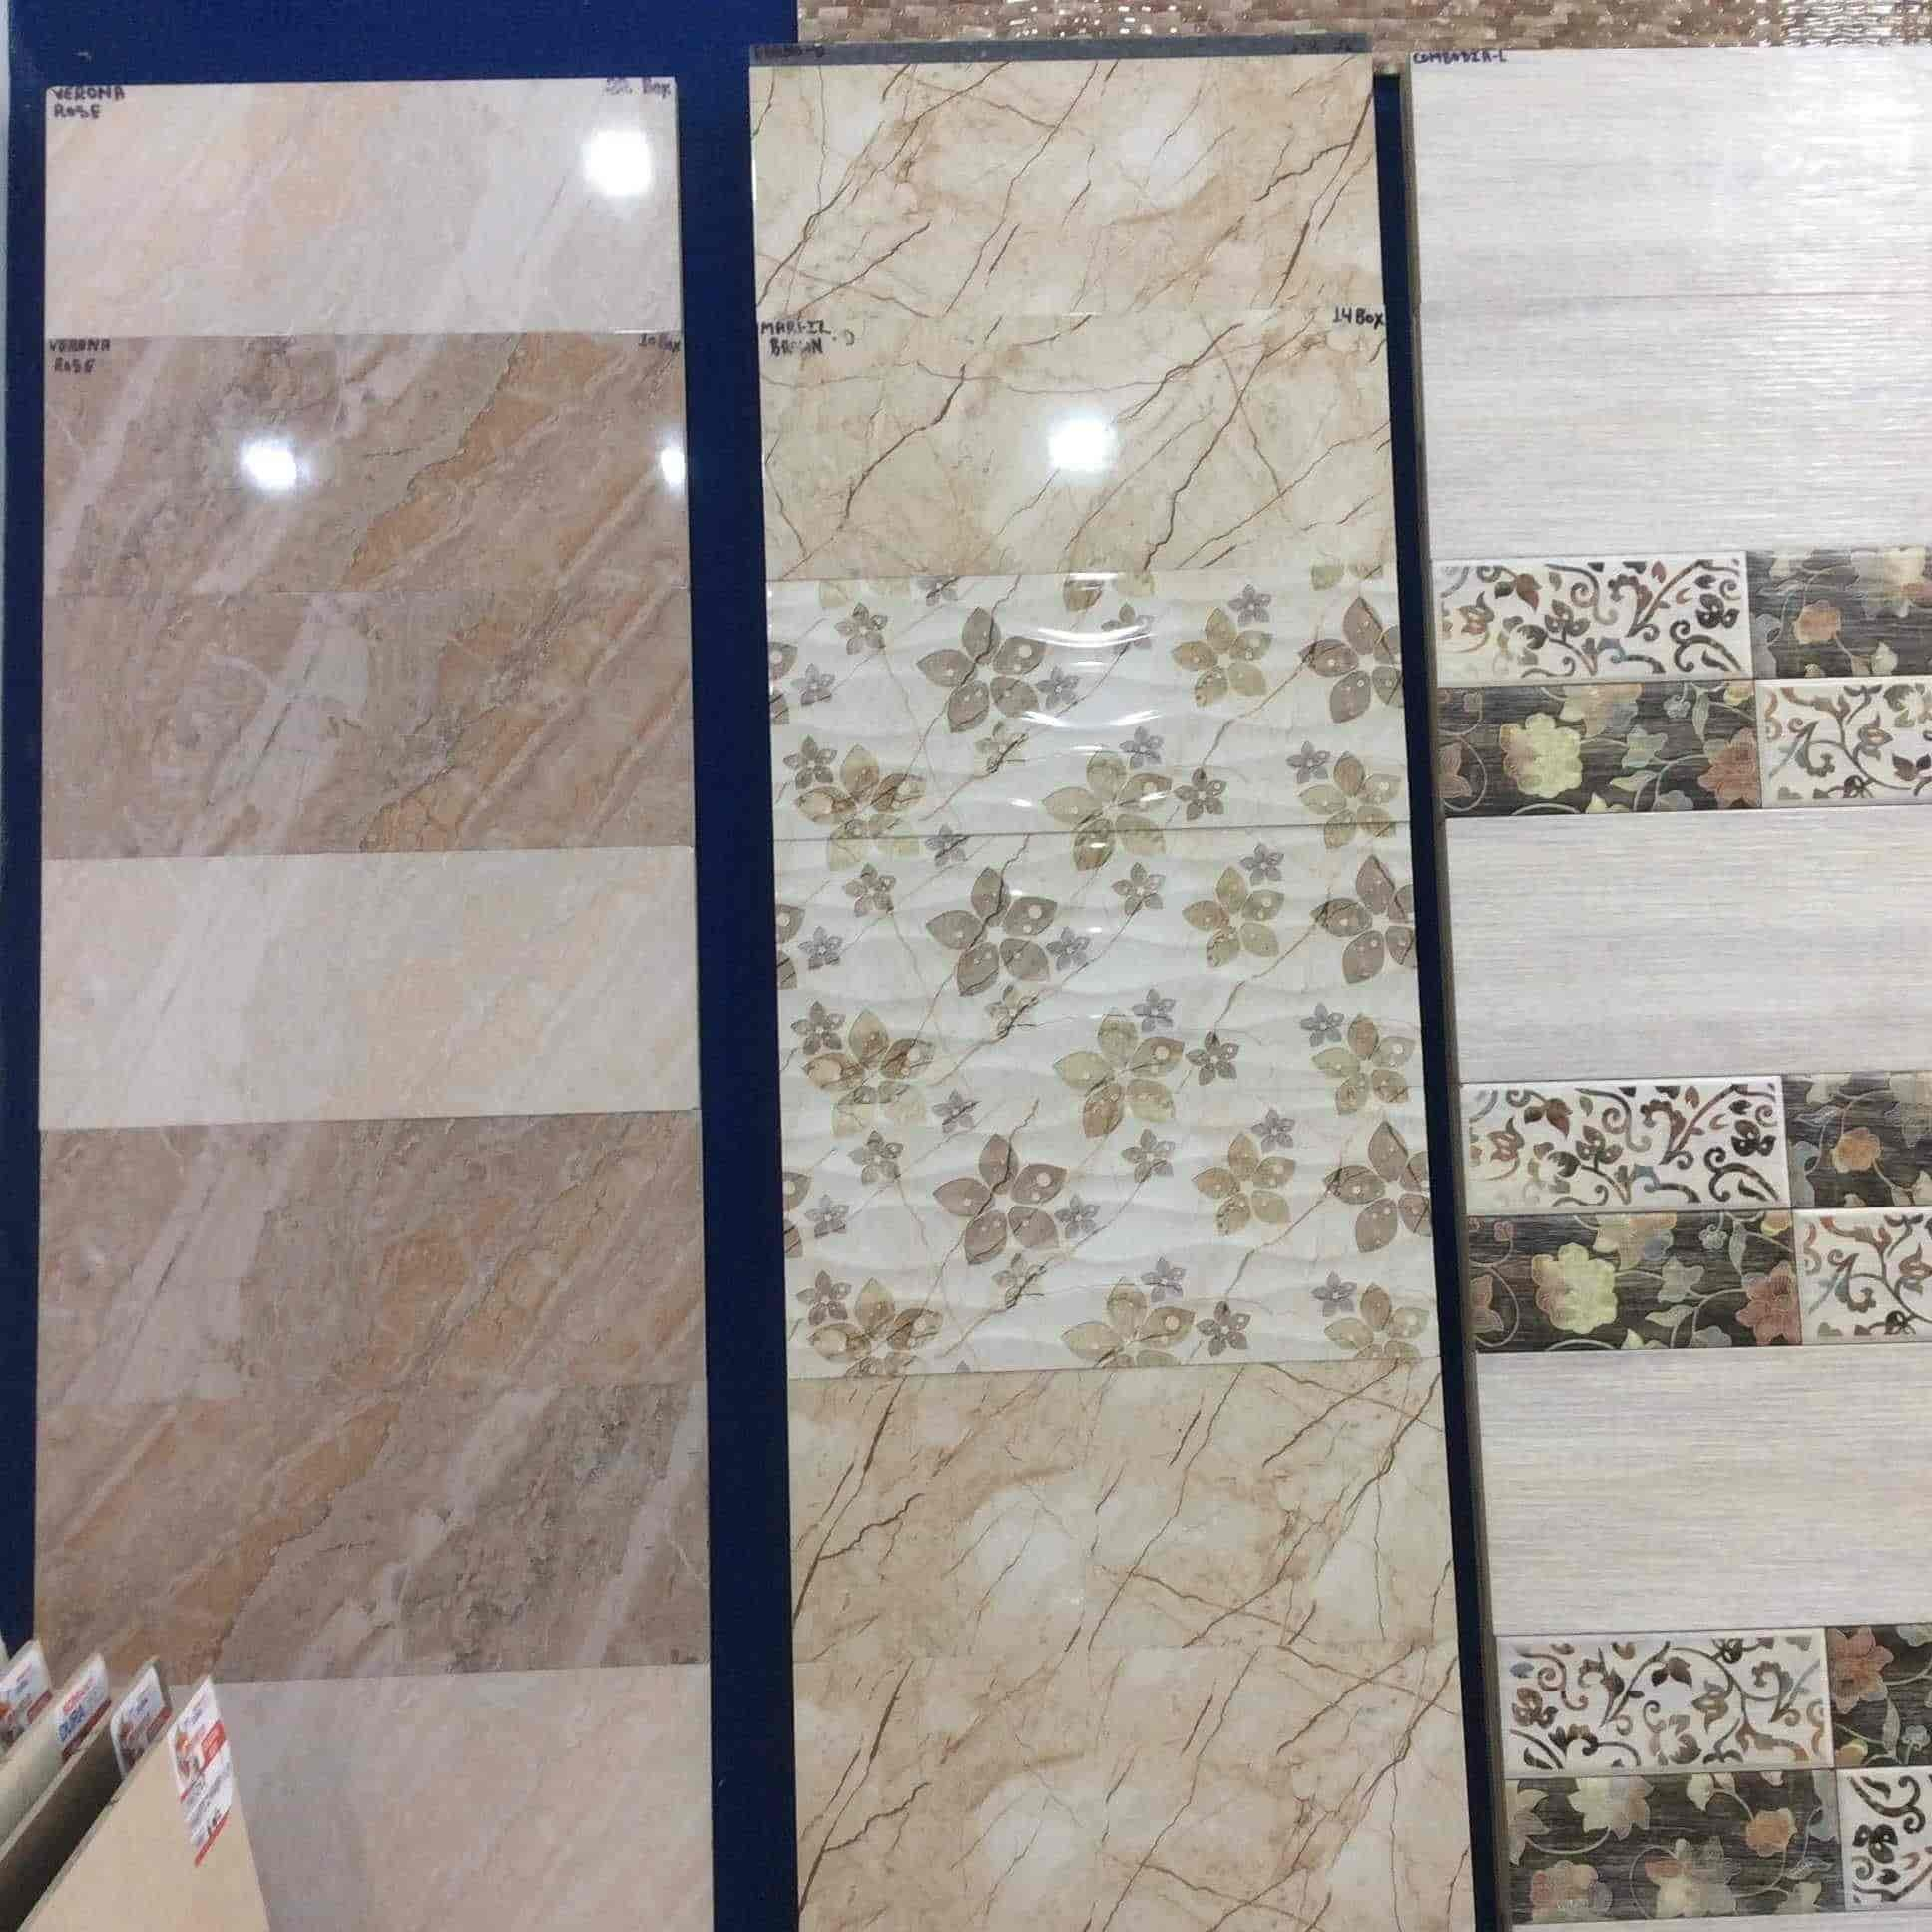 National tiles photos saharanpur pictures images gallery sanitary tiles national tiles photos saharanpur tile dealers dailygadgetfo Images